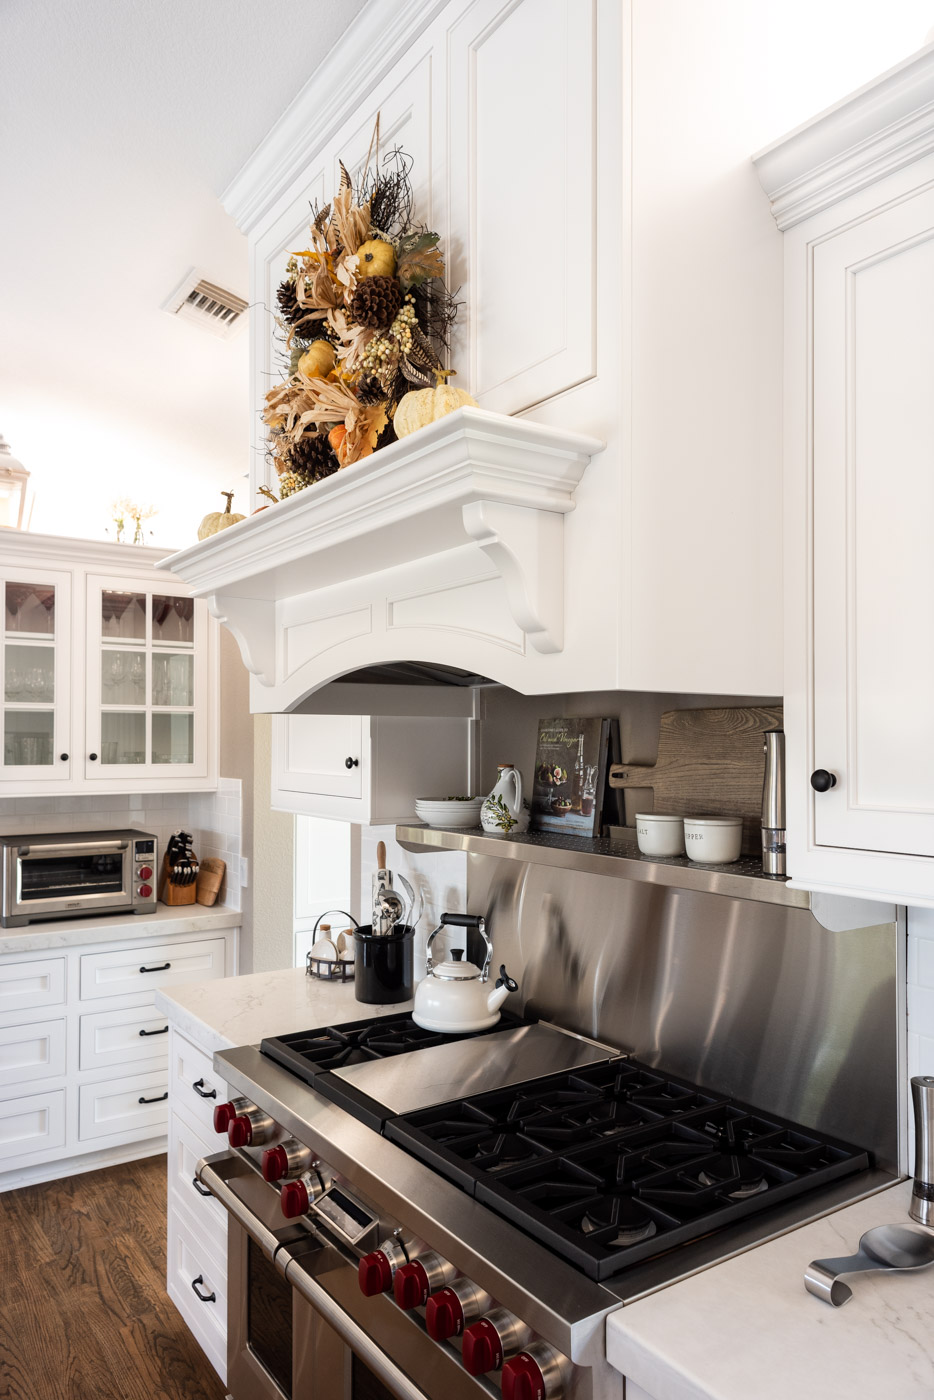 Transitional Country Cottage style kitchen with white recessed panel painted cabinets and custom range hood